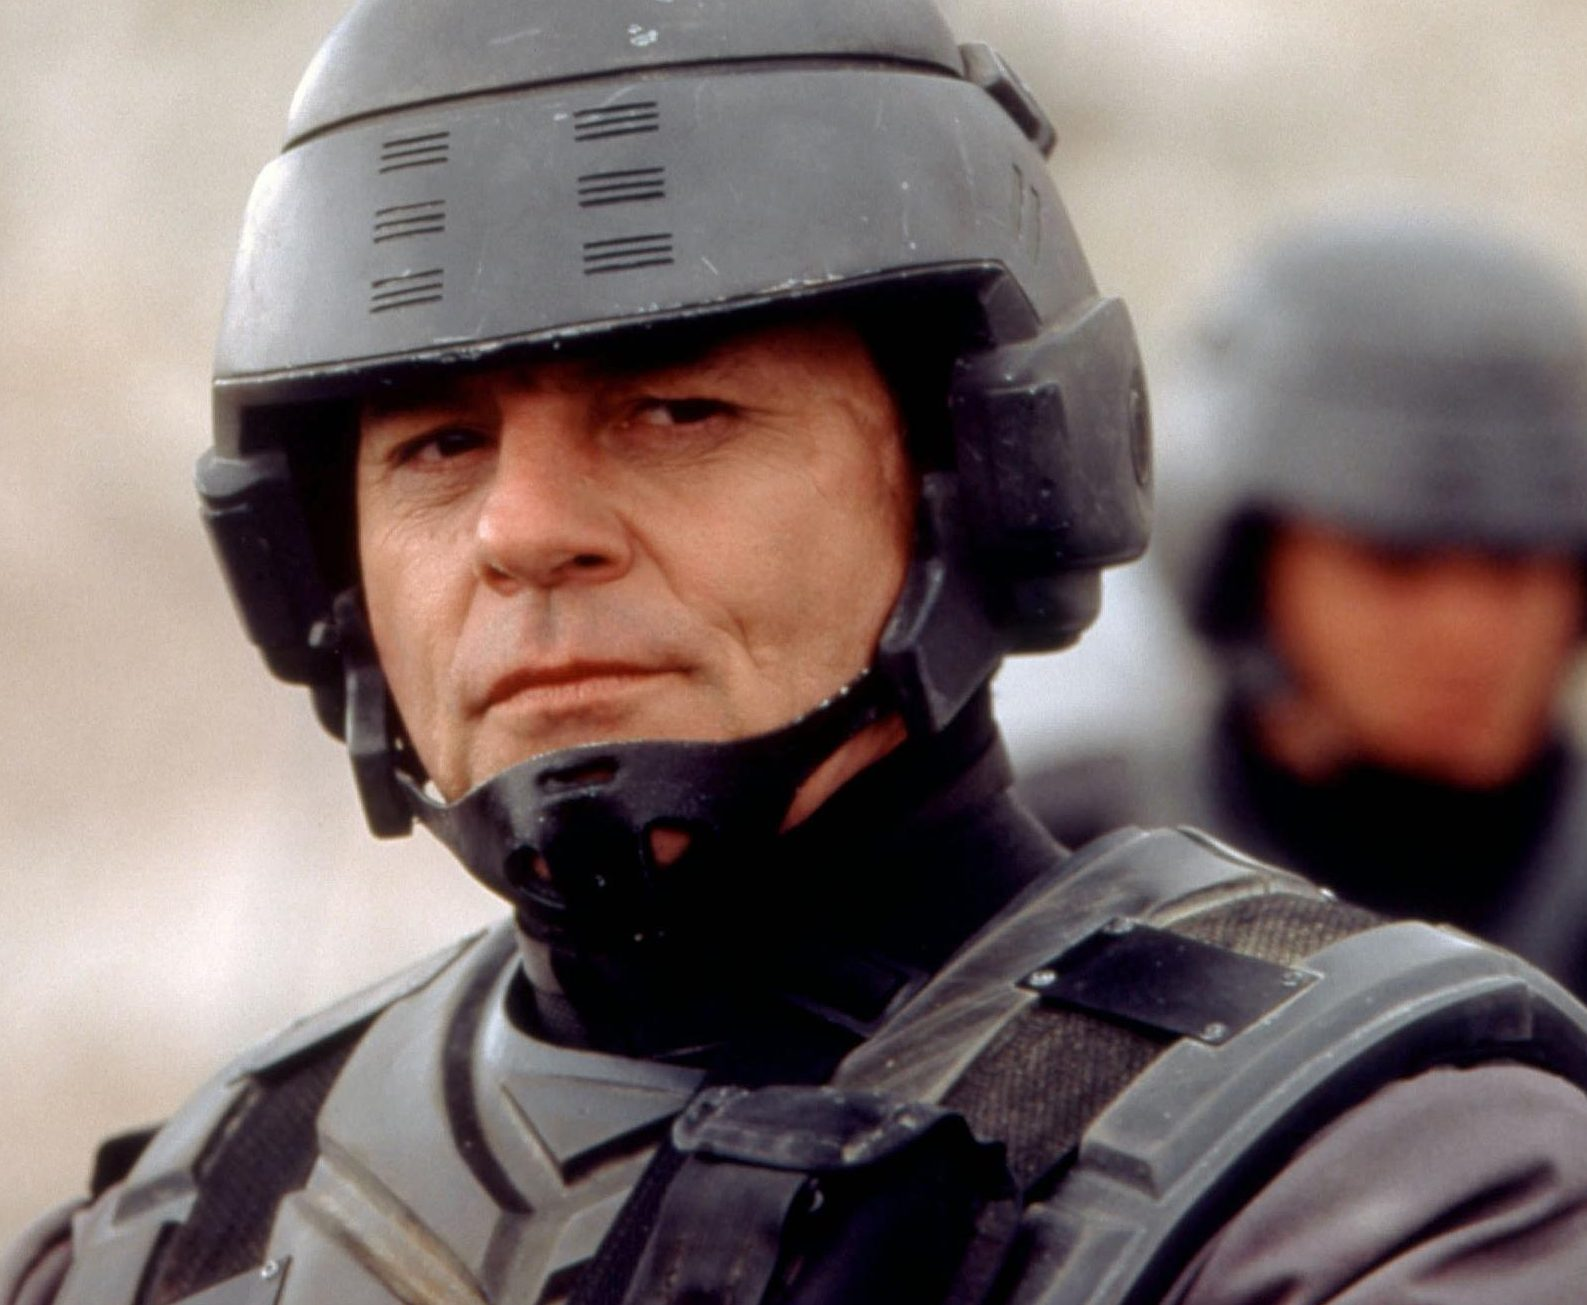 Starship Troopers Michael Ironside e1623314202603 Mark Wahlberg Almost Starred, And More You Never Knew About Starship Troopers